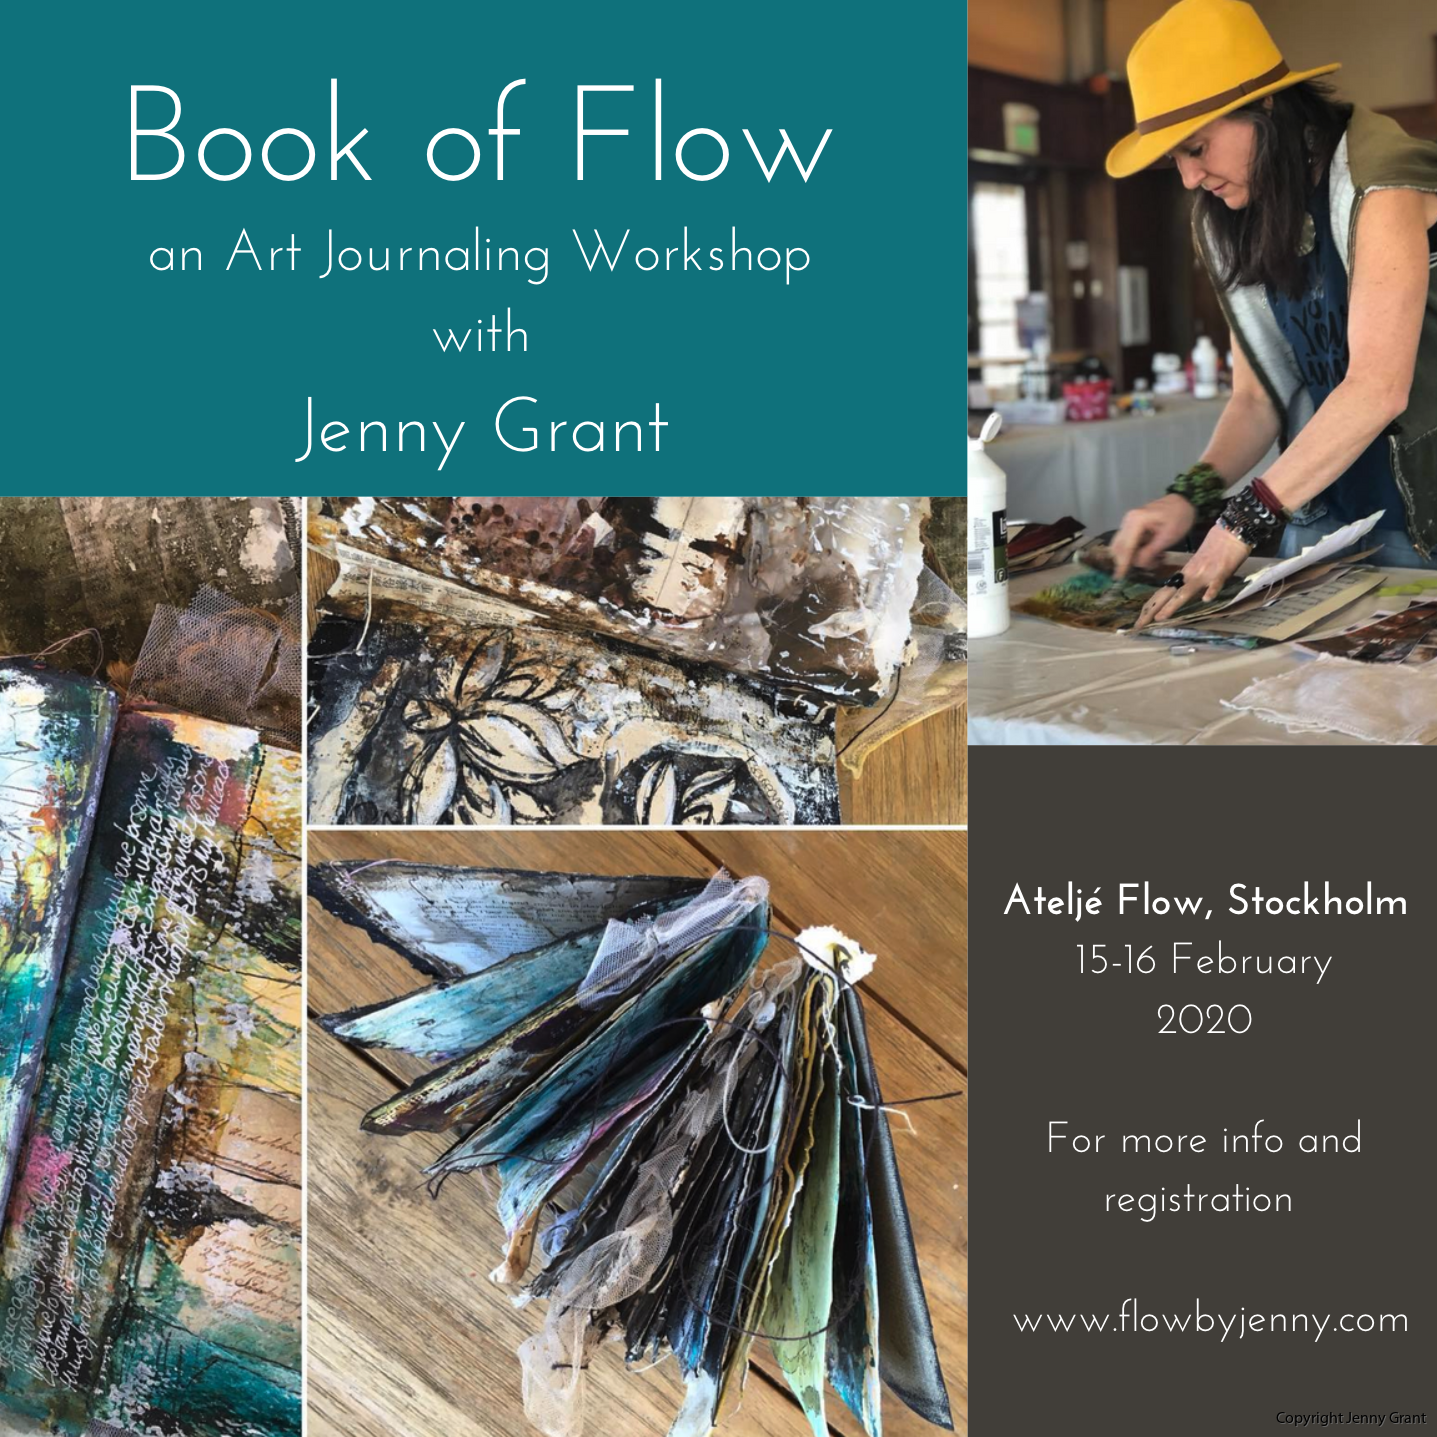 Book of Flow Stockholm Jenny Grant